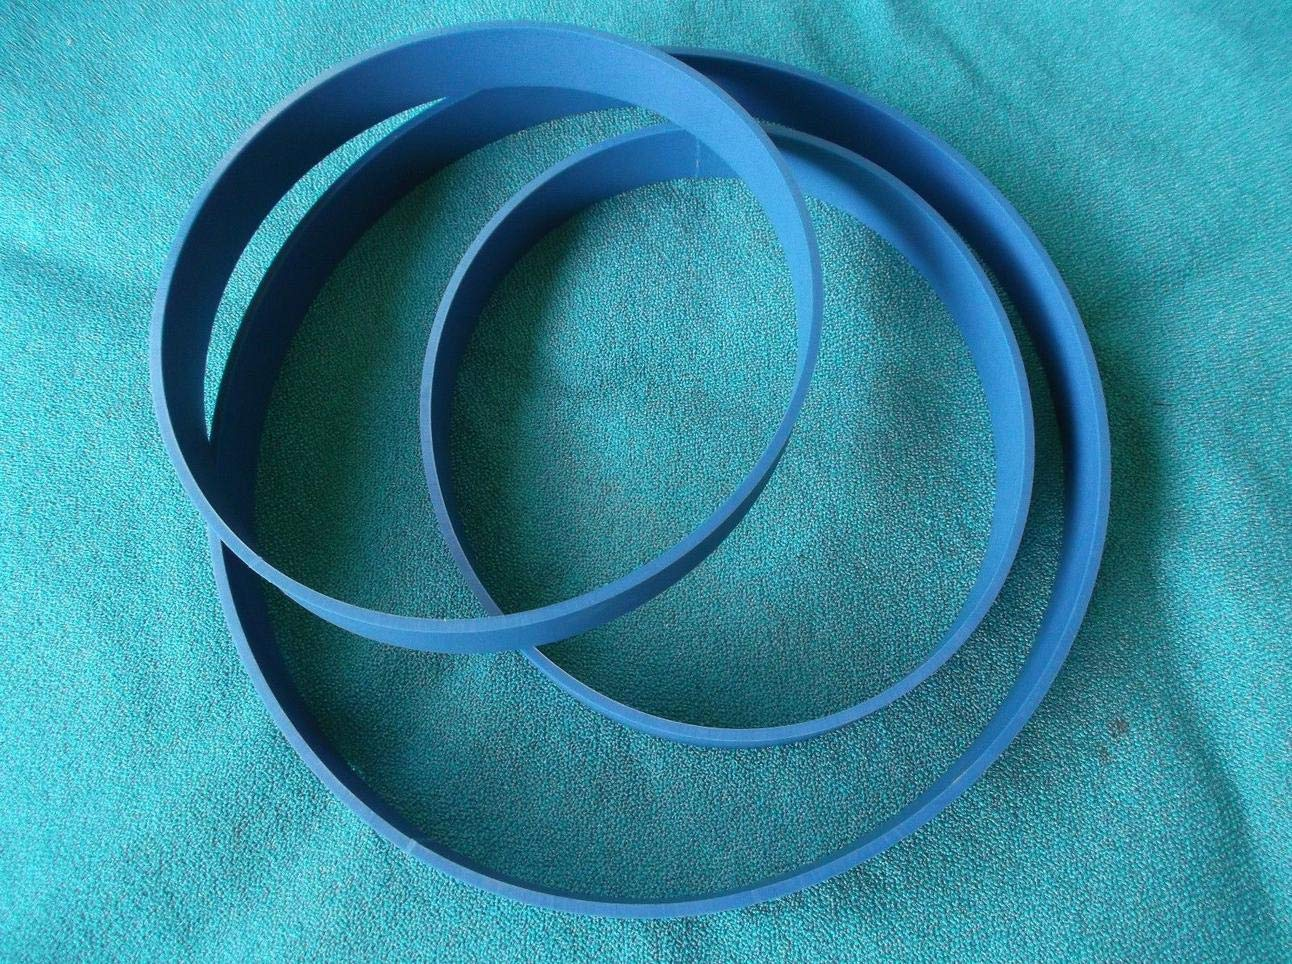 28-560 DELTA BLUE MAX URETHANE BAND SAW TIRES FOR DELTA 16'' BAND SAW 28-560